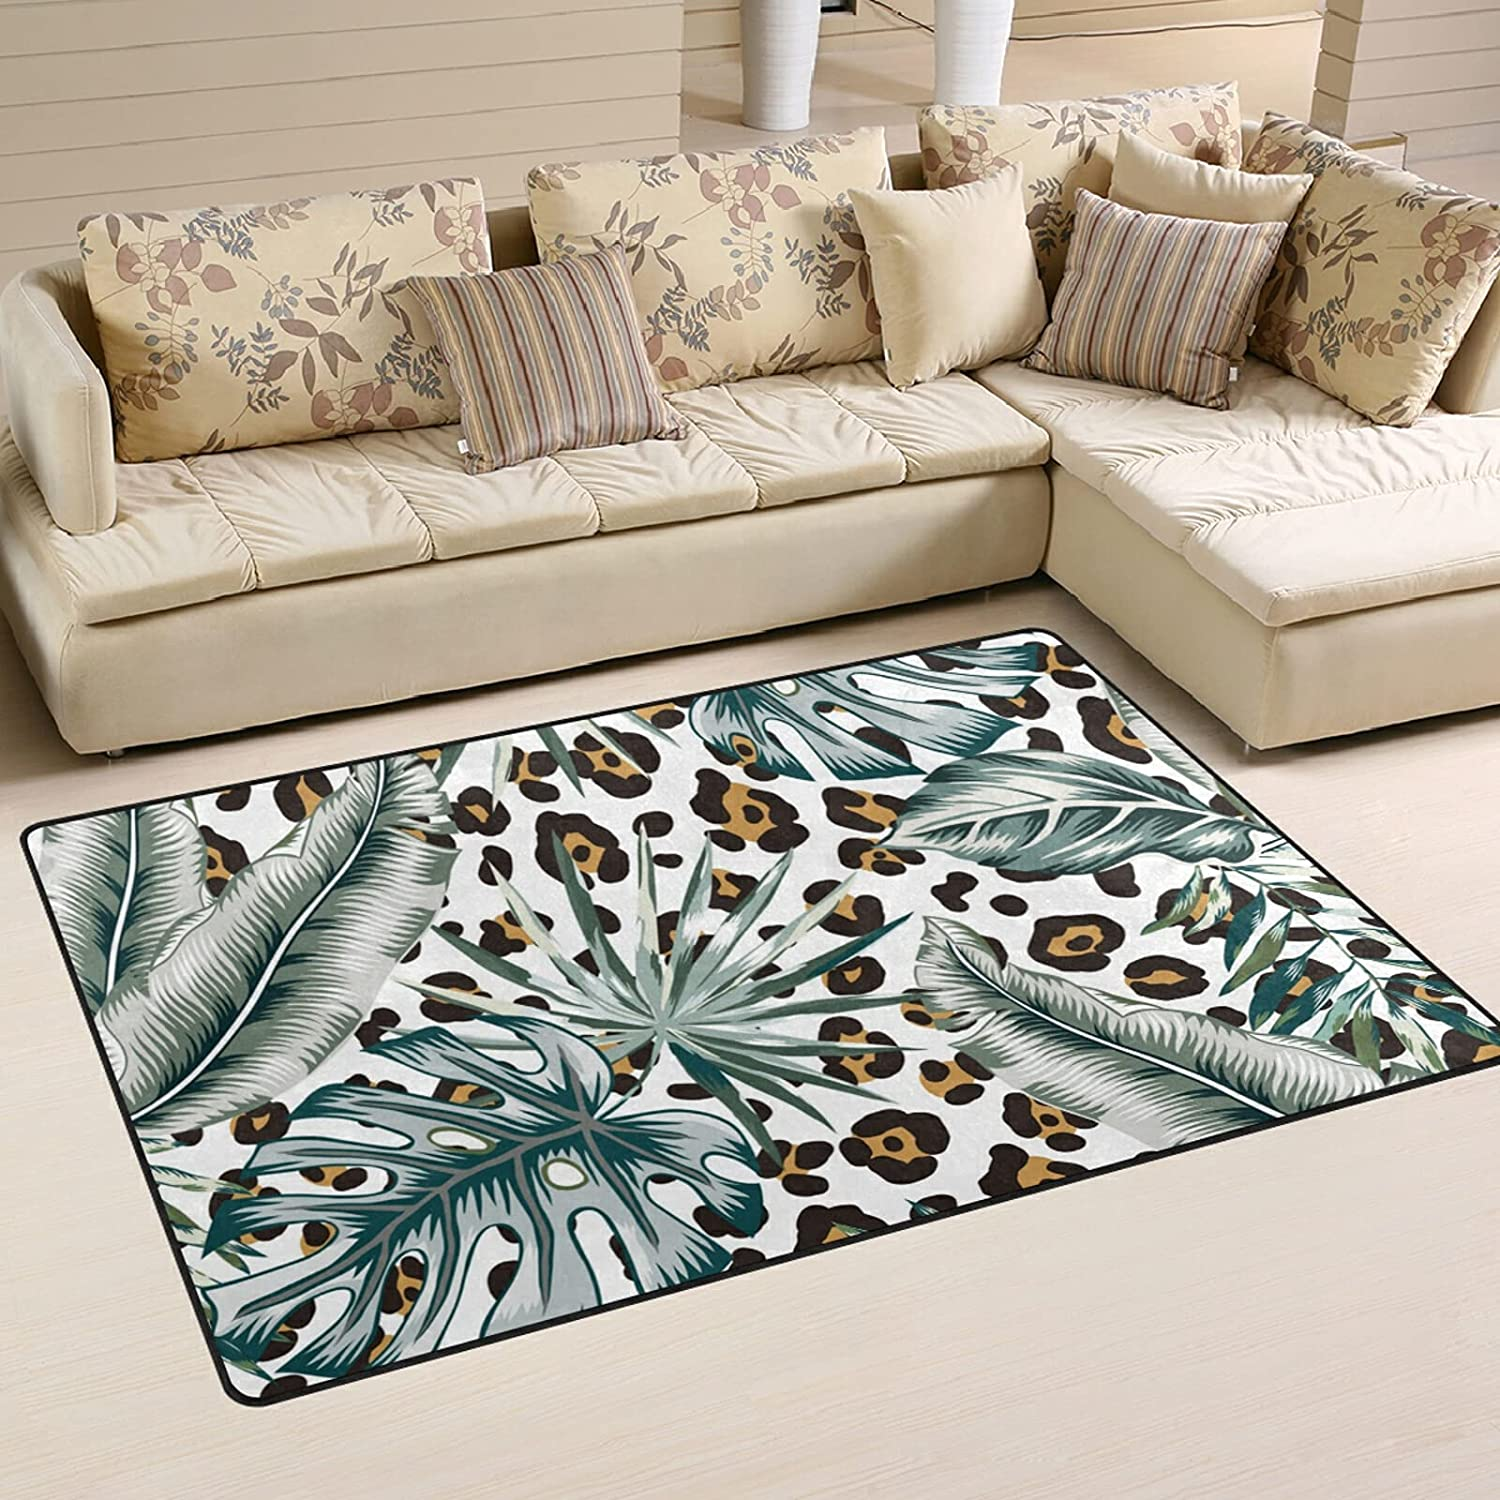 Monstera Leaves Animal Ranking TOP8 Print Large High quality new Nursery Rugs Playma Area Soft